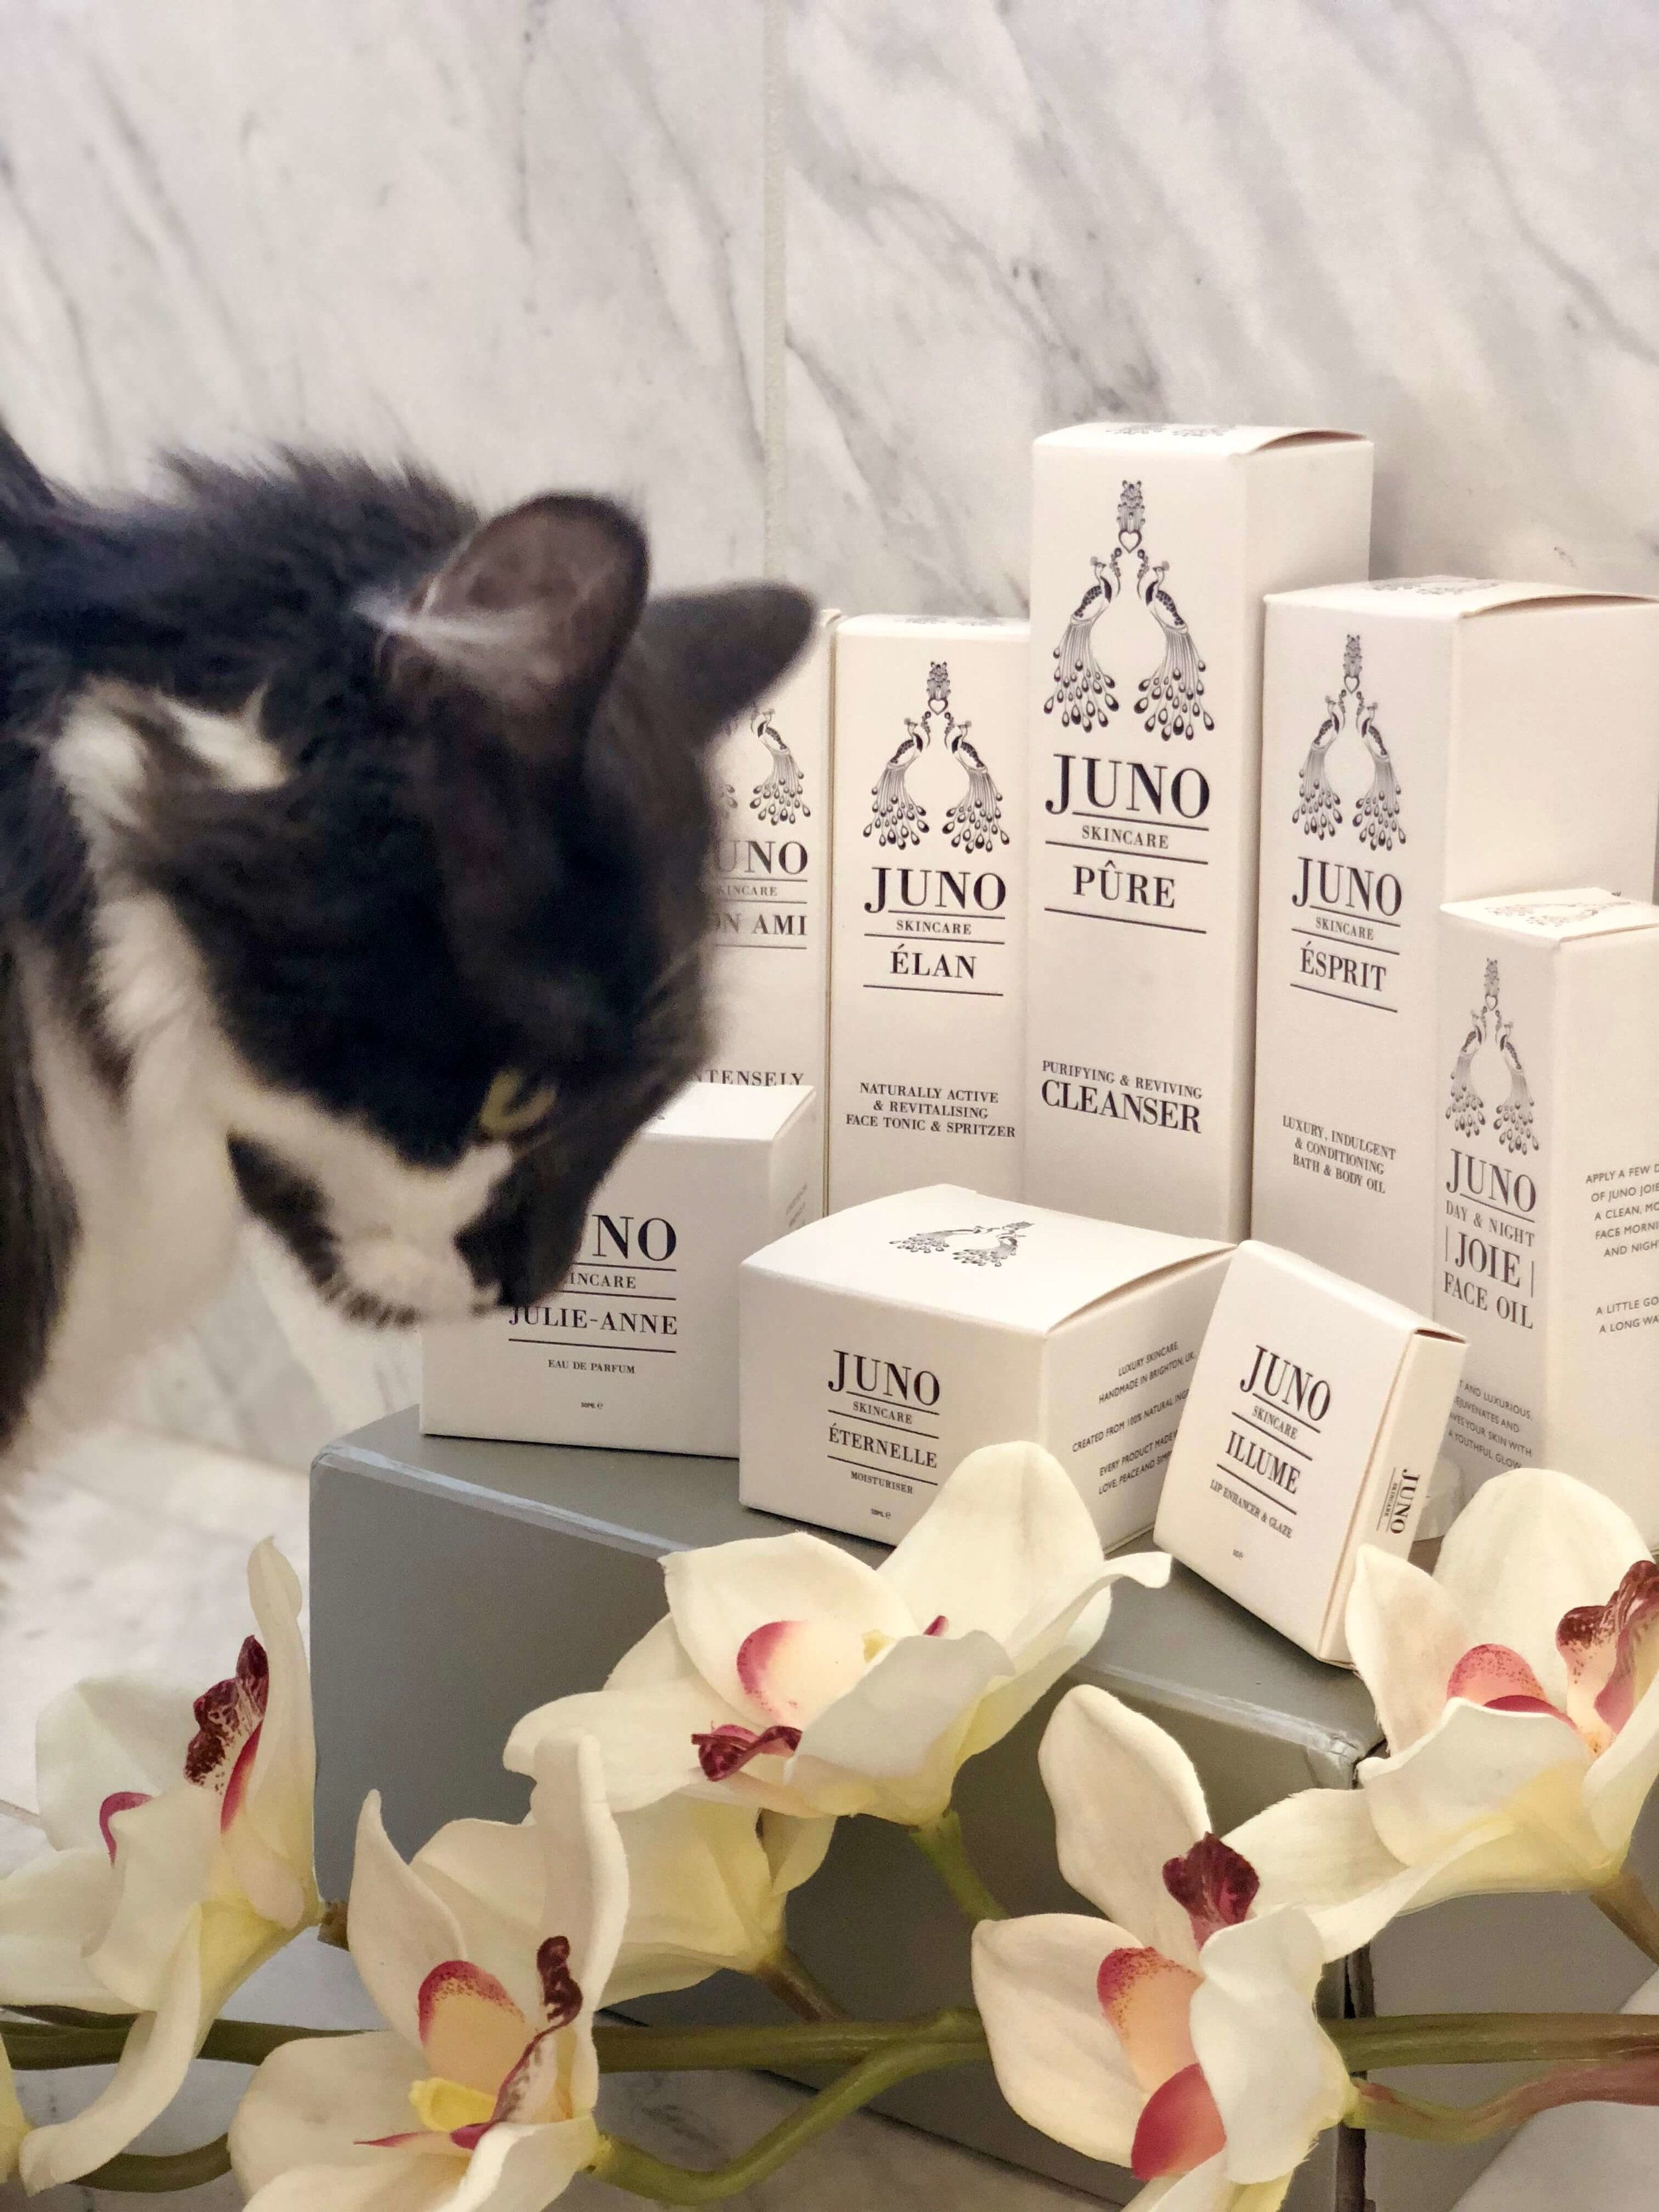 Going for a product shot but he wanted in and I couldn't not include my gorgeous boy in the pic since we wanted in on the action.